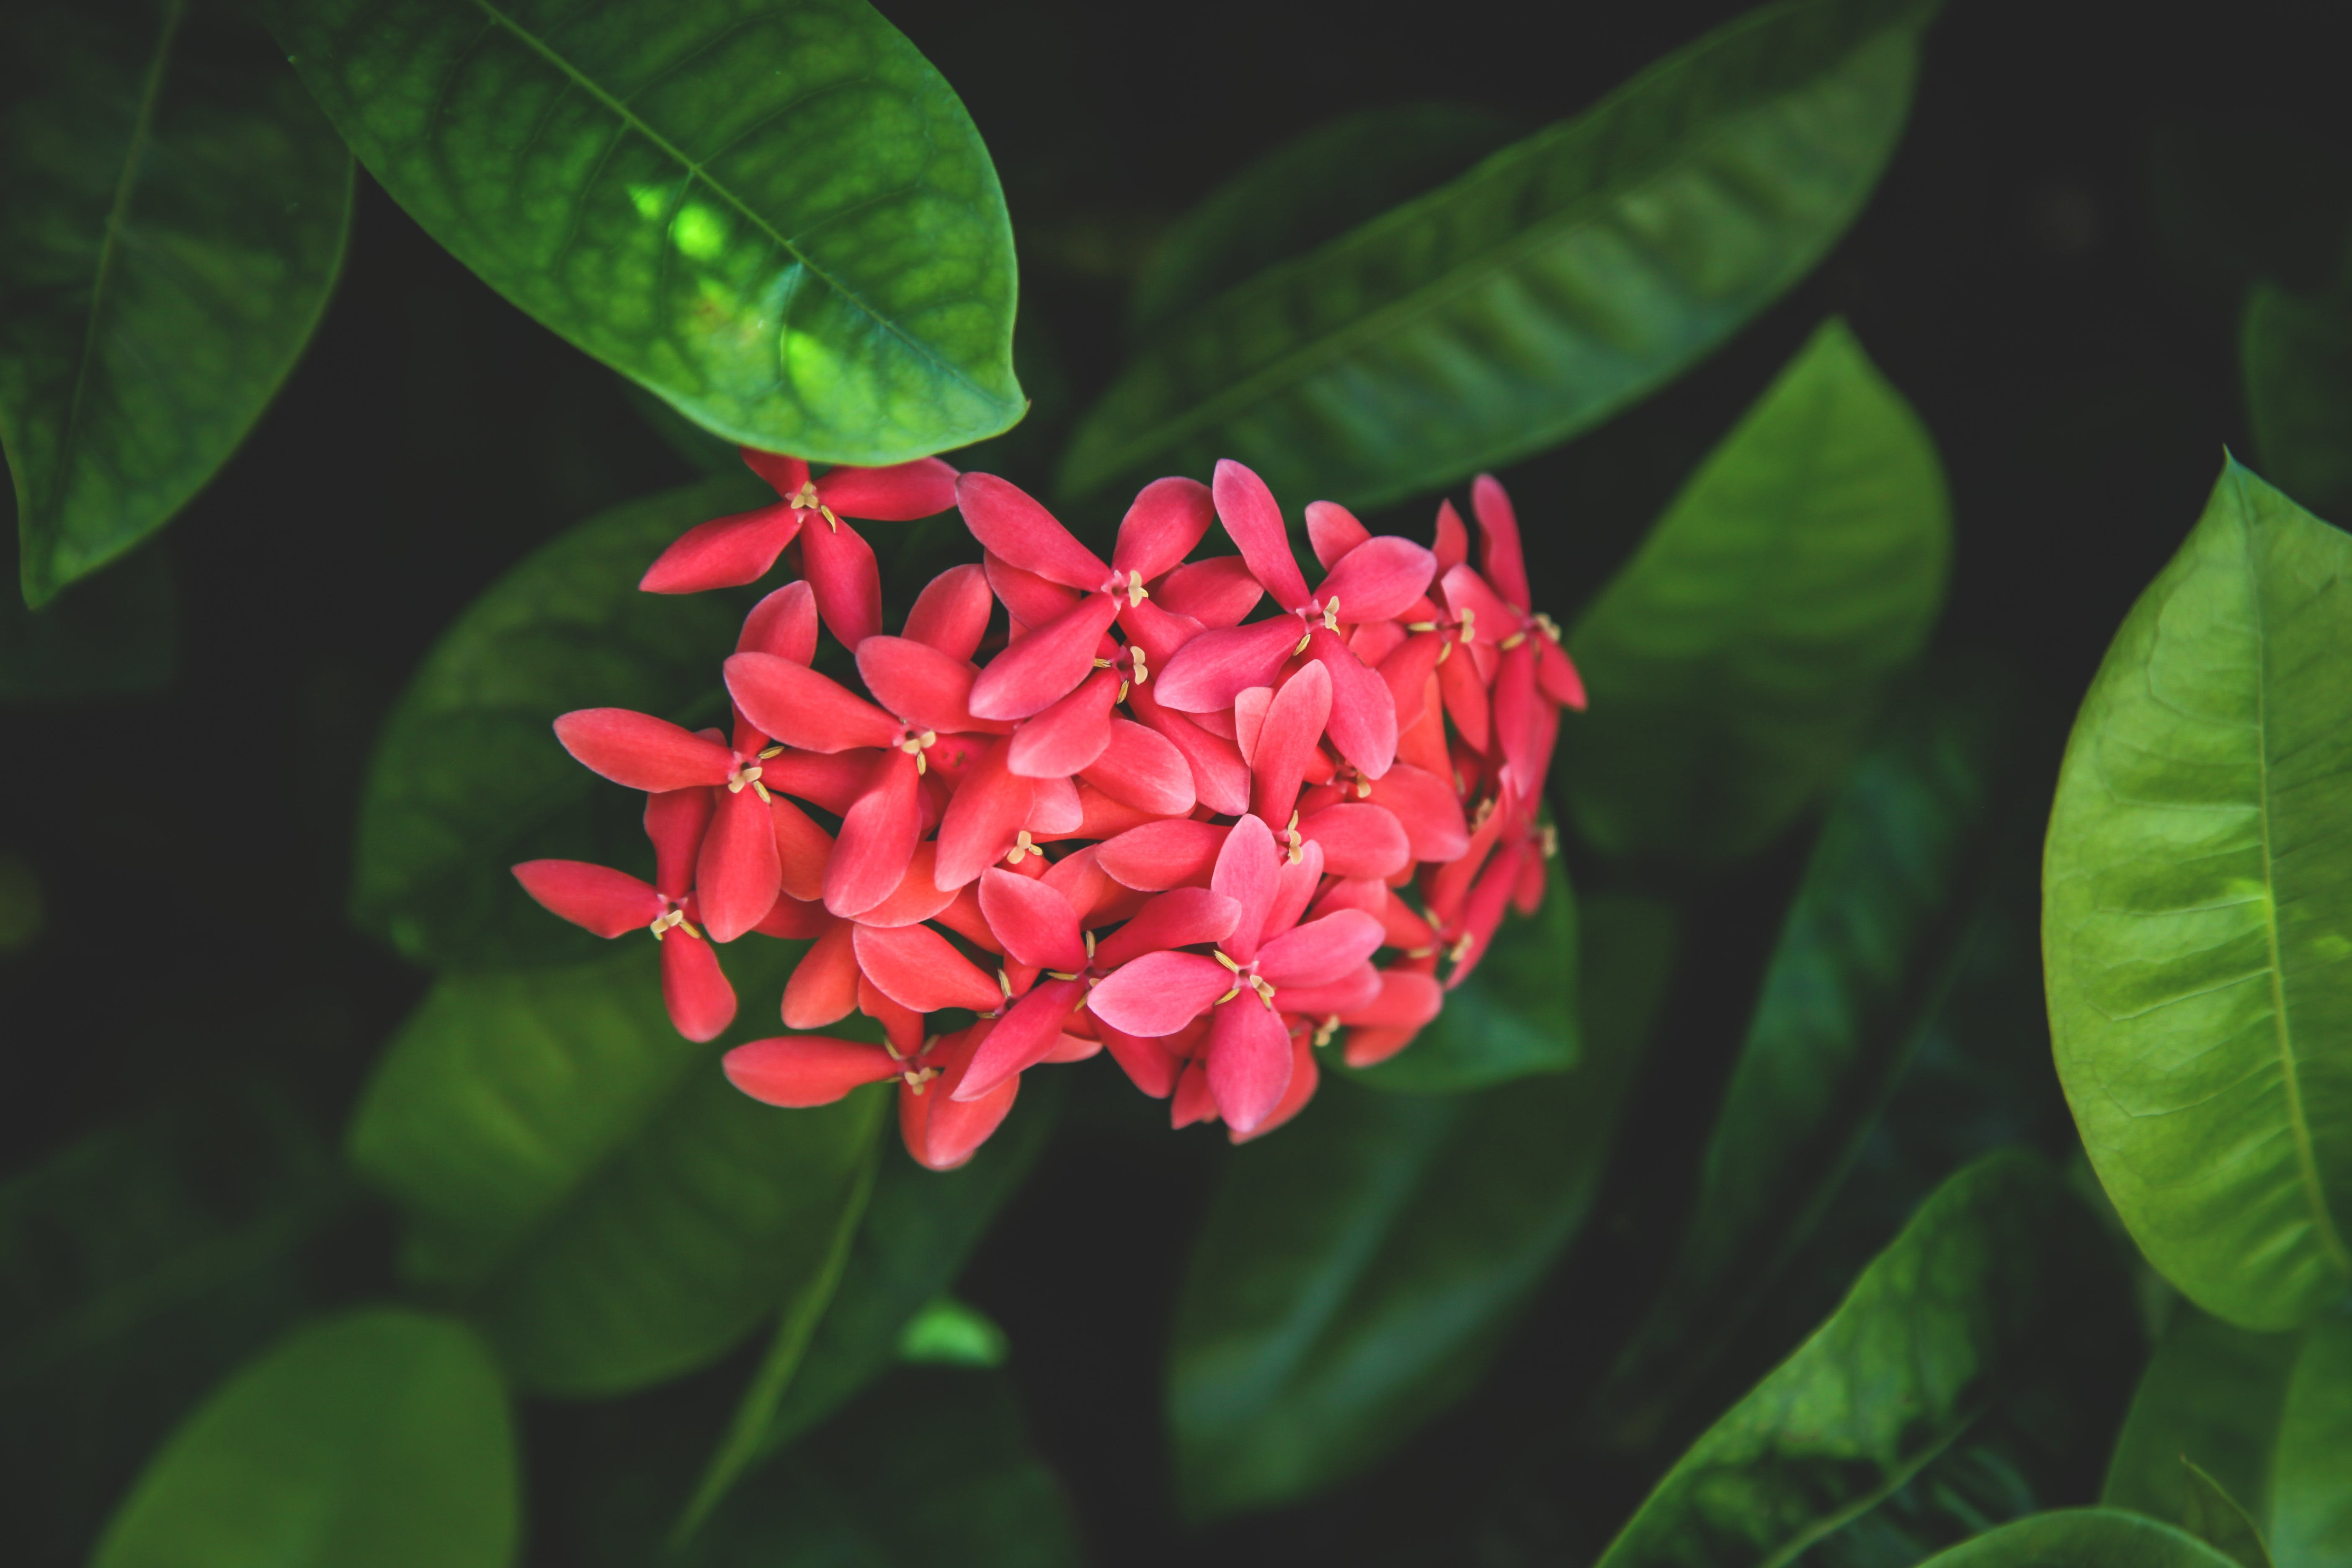 Red Ixora Flowers in Bloom Closeup Photography